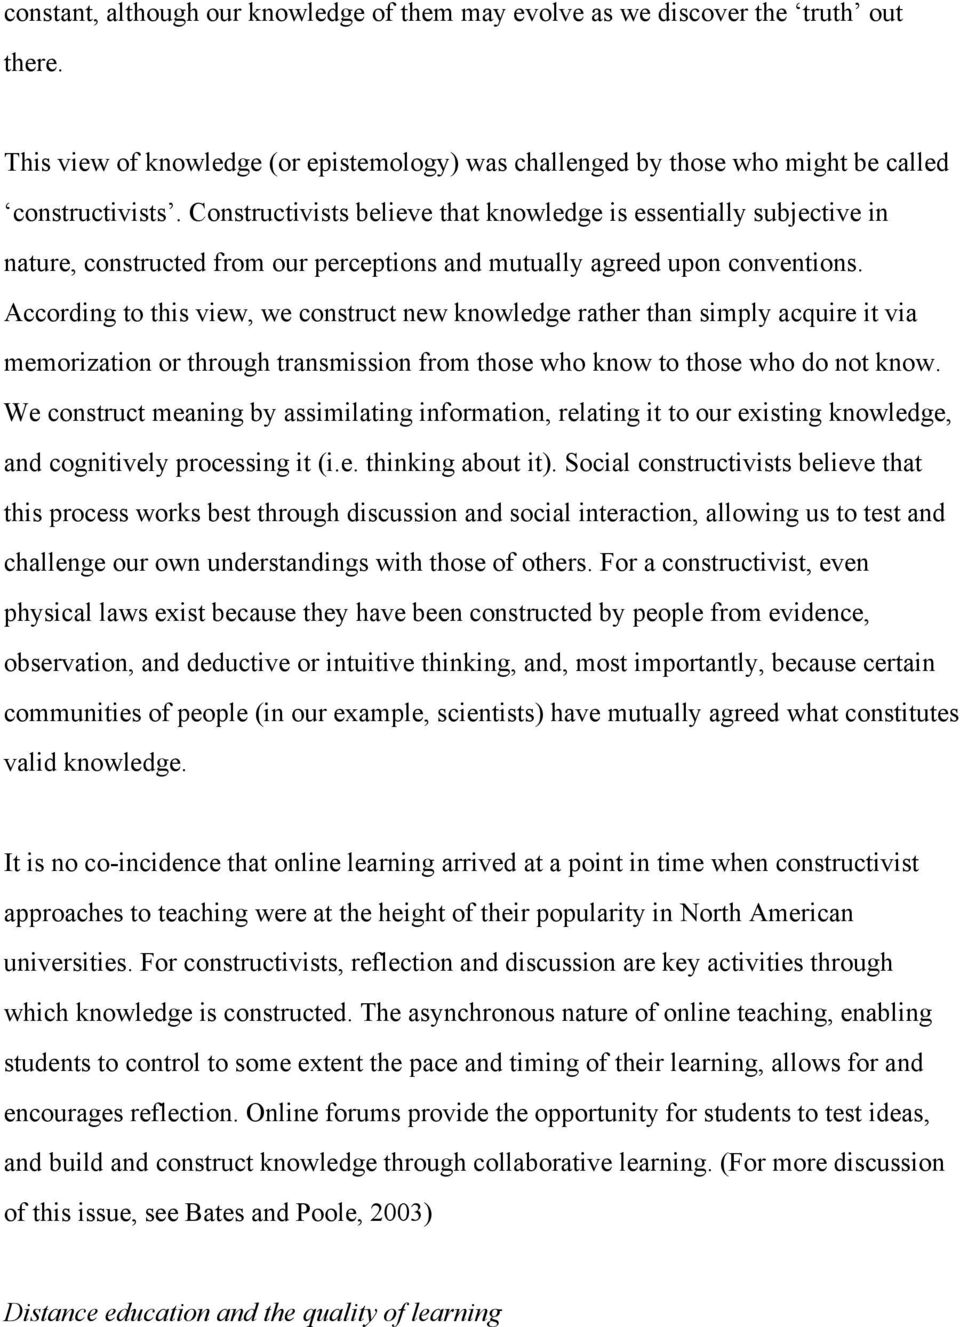 According to this view, we construct new knowledge rather than simply acquire it via memorization or through transmission from those who know to those who do not know.